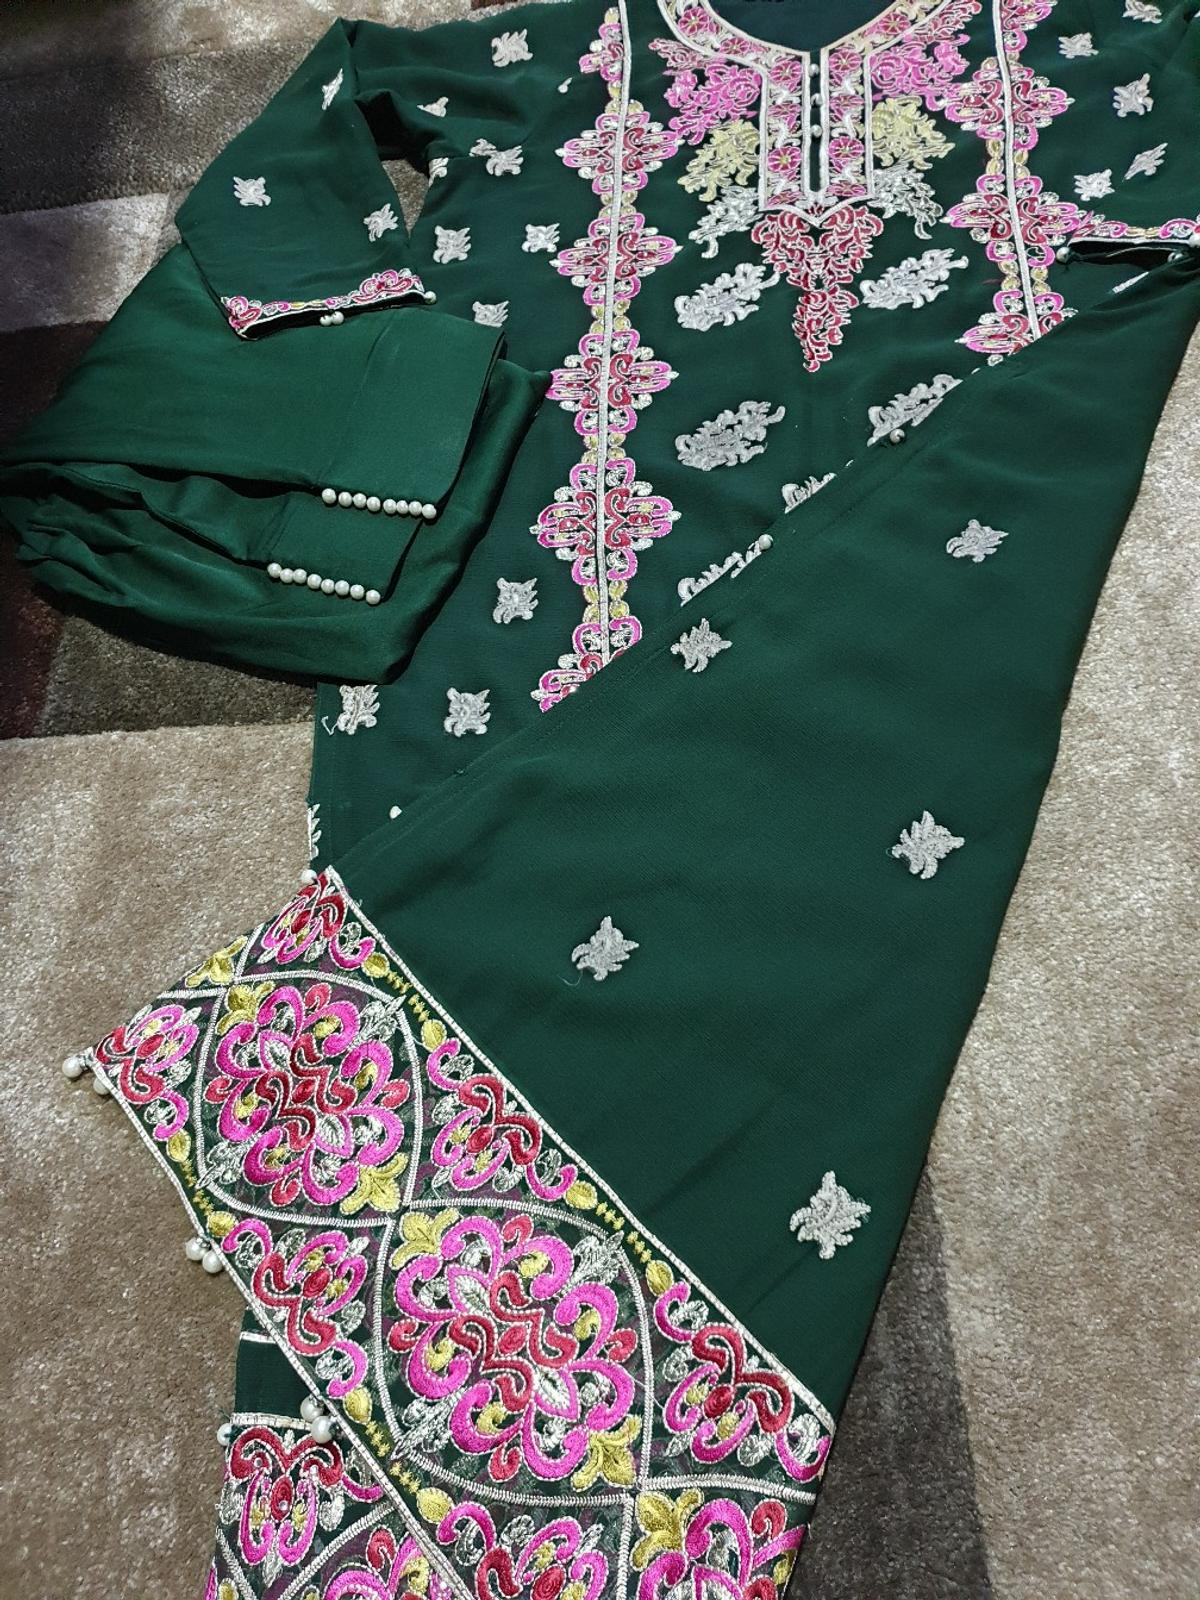 stunning chiffon shalwar kameez with heavy embroidery and bead detail  size L/XL  only used once immaculate condition  Length 47 Bust 22 Sleeves 21  BOTTLE GREEN COLOUR  2PC  NO OFFERS £13